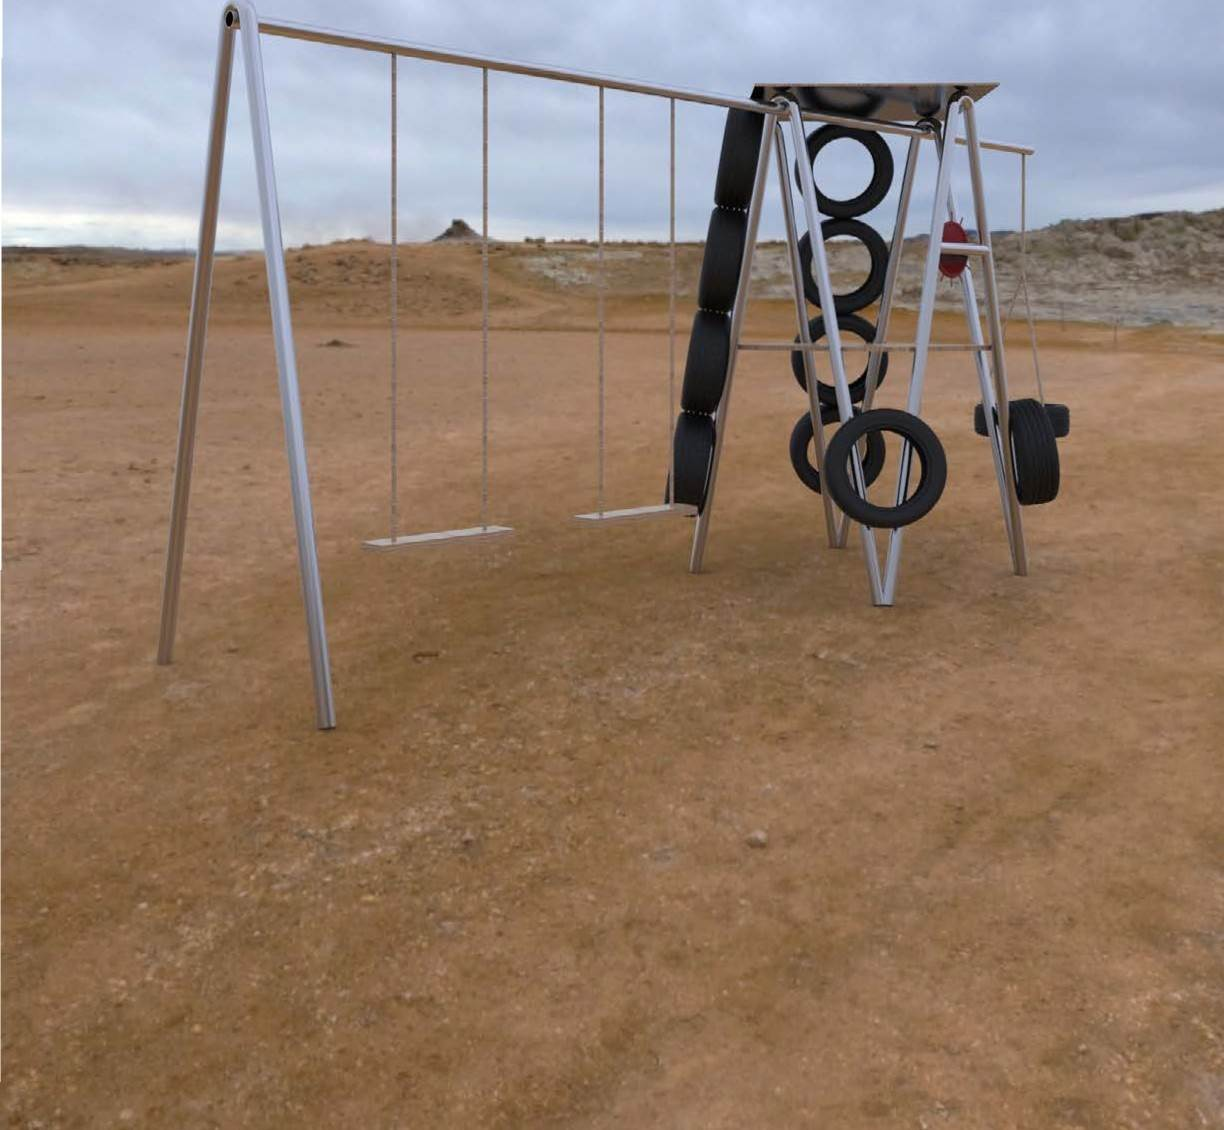 student designs for outdoor playground equipment tired road warrior